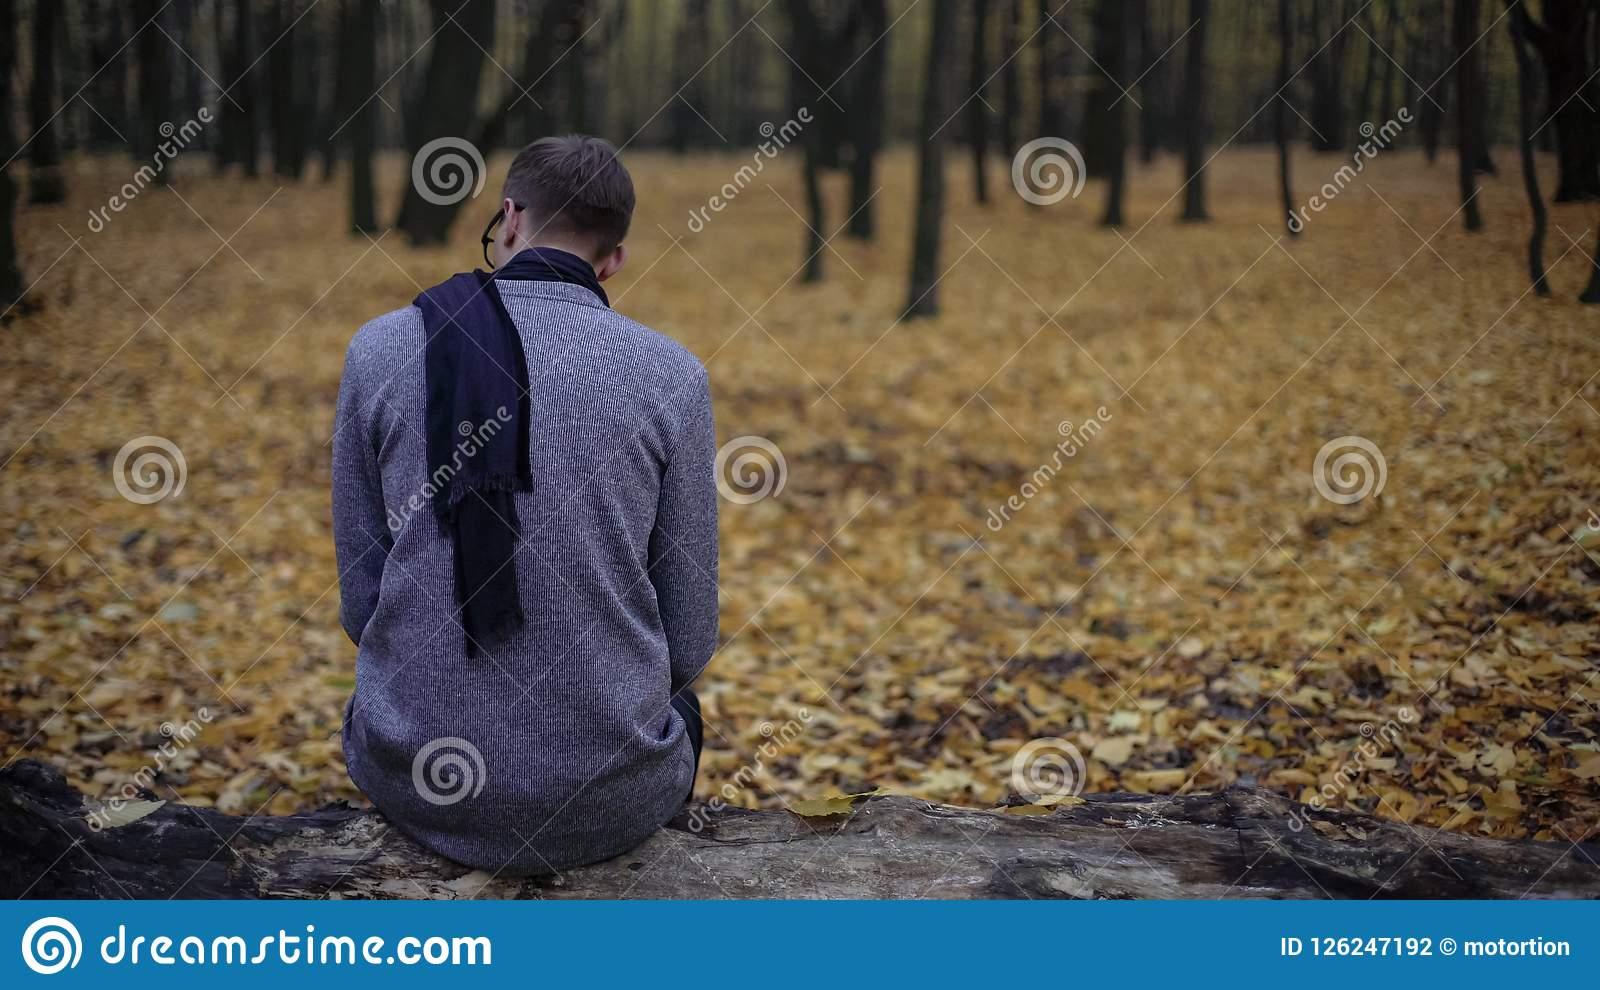 Young man sitting alone in autumn park, feels depression, nostalgia, loneliness